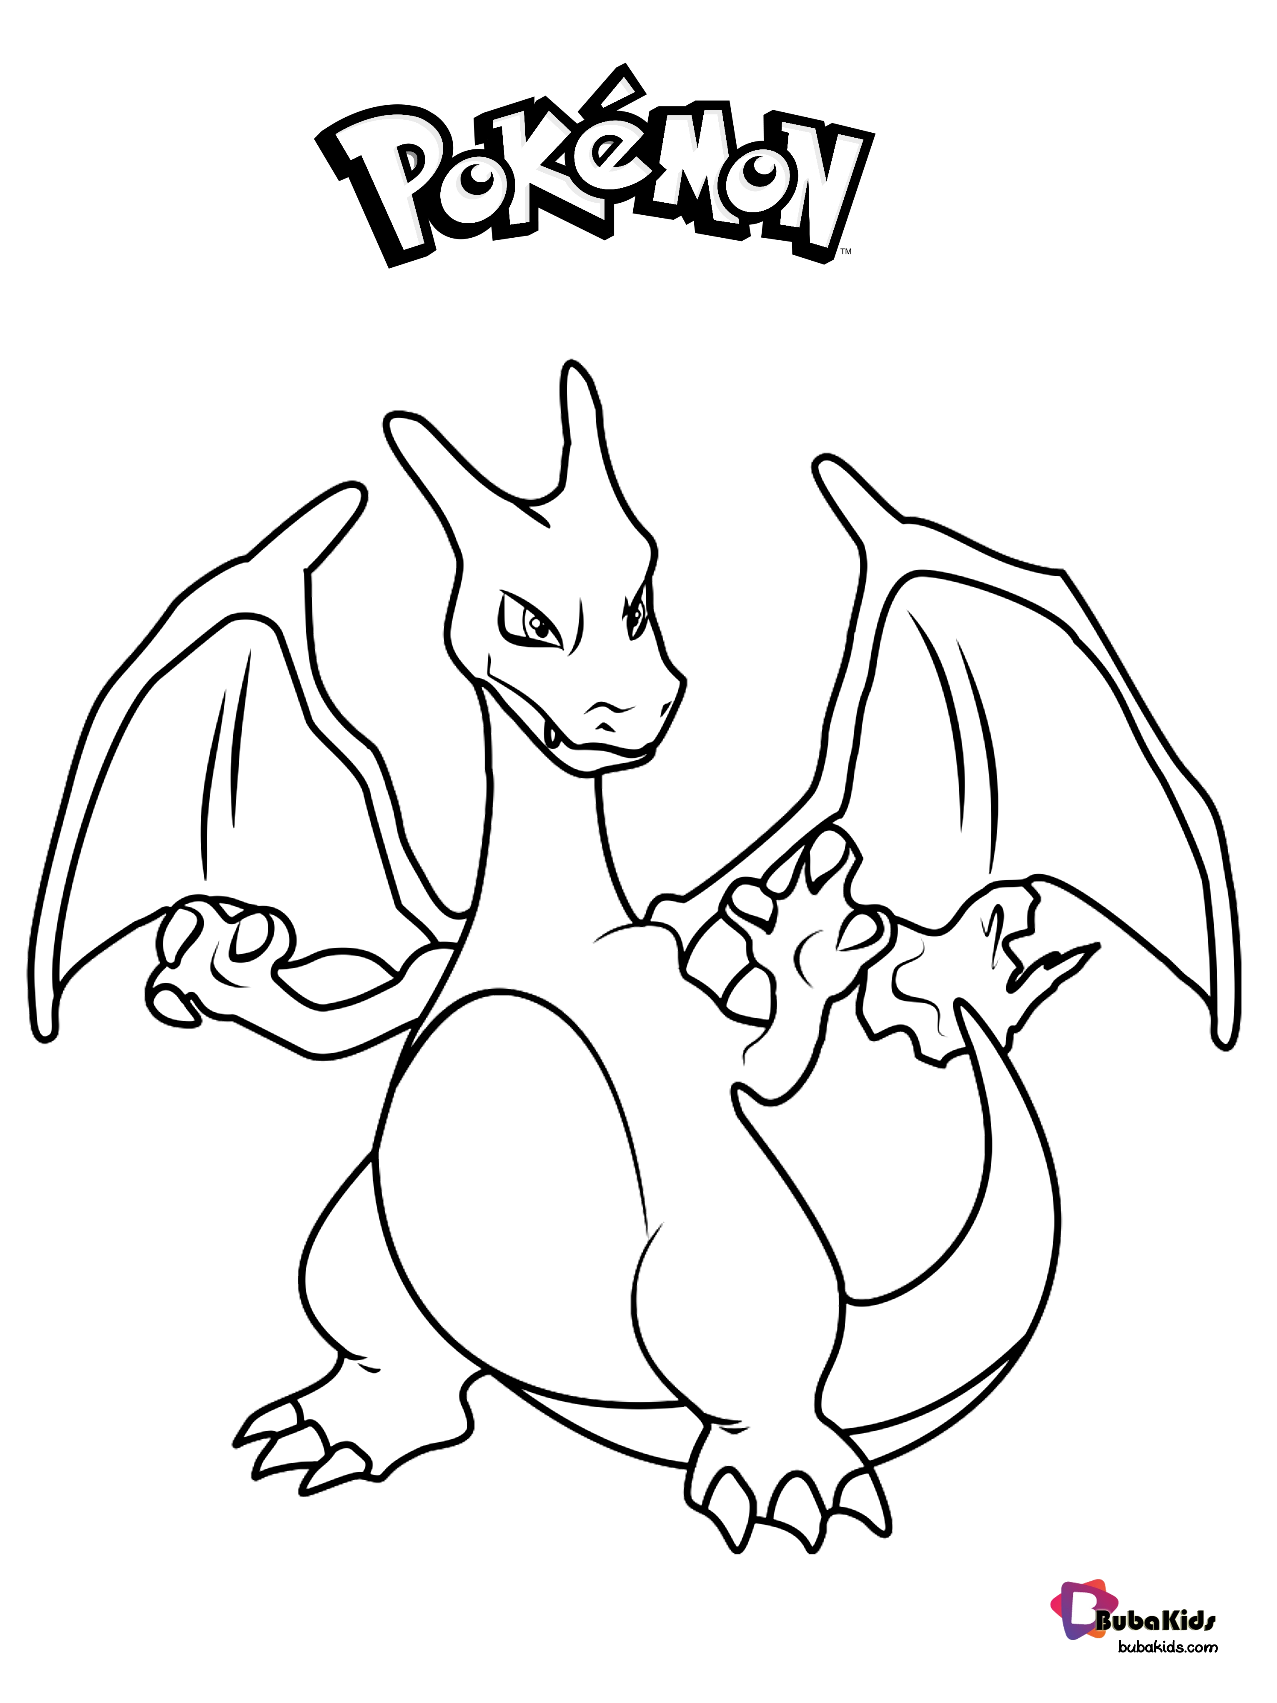 Free Pokemon Charizard Coloring Page Collection Of Cartoon Coloring Pages For Teenage Printabl In 2020 Pokemon Coloring Pages Cartoon Coloring Pages Pokemon Charizard